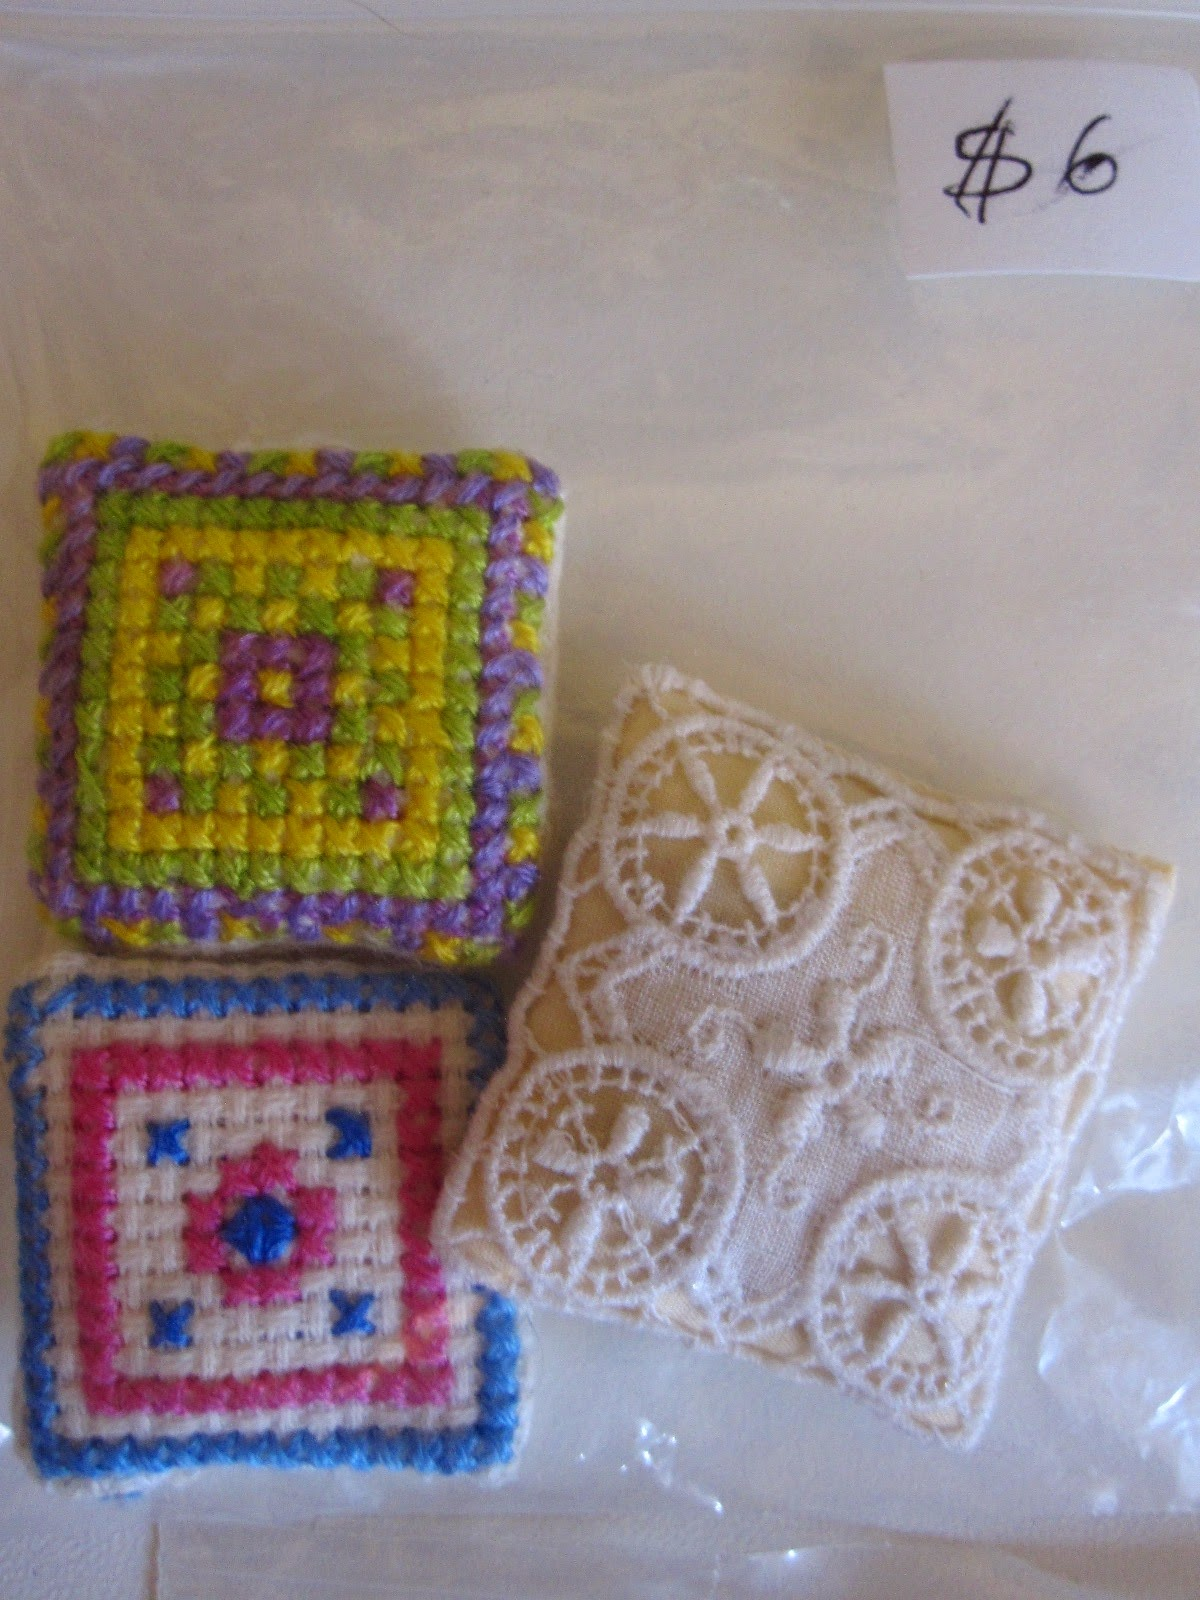 Bag with three dolls' house miniature cushions, two cross stitched, one is lace. Bag is priced at $6.